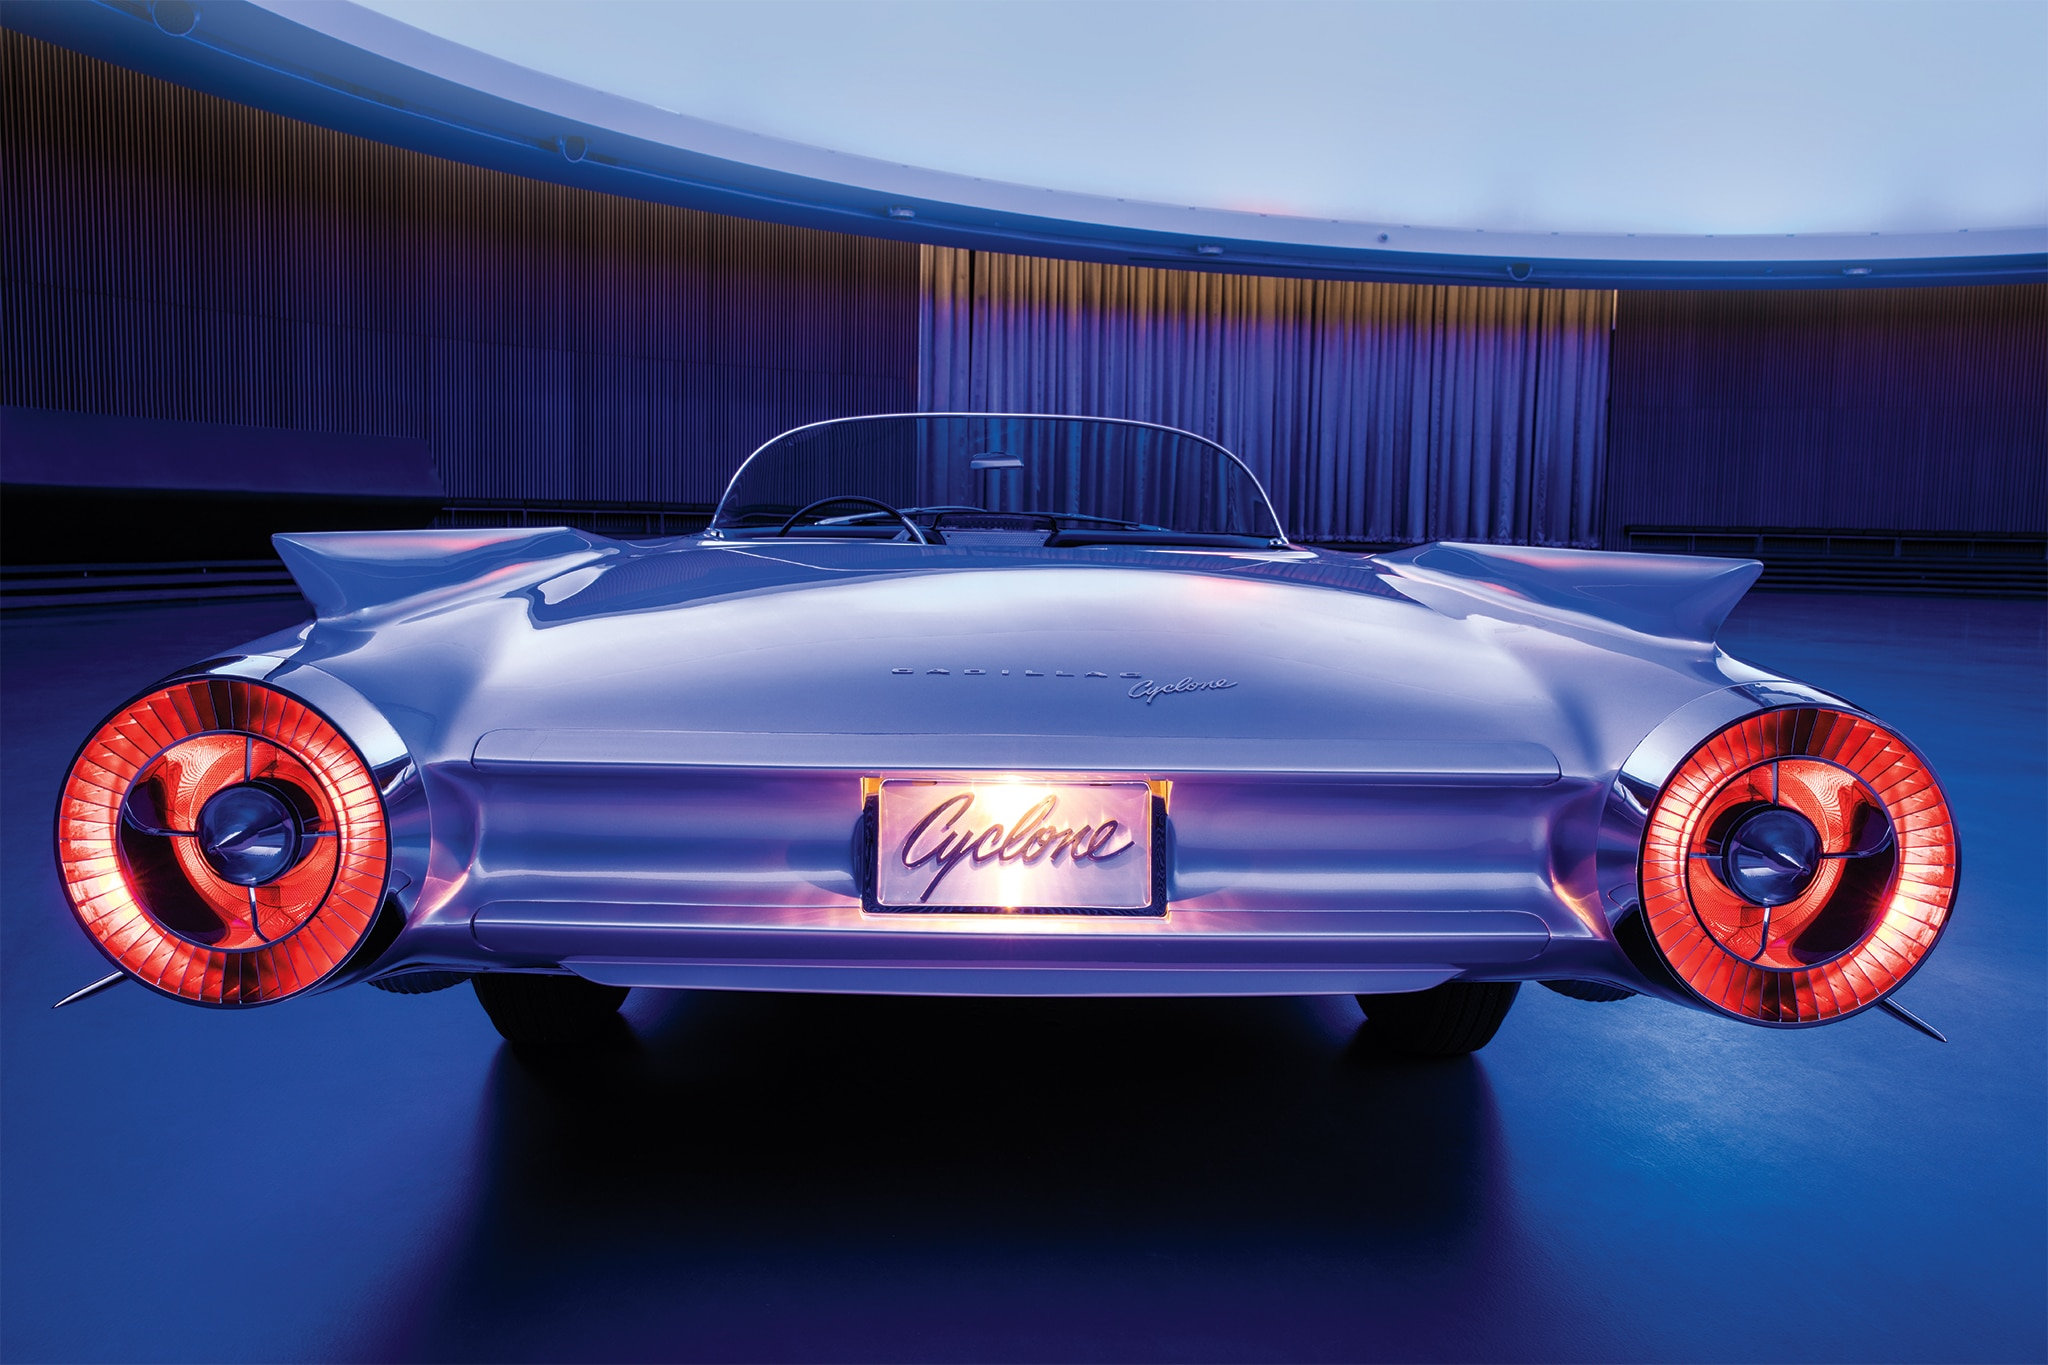 http://st.automobilemag.com/uploads/sites/11/2016/11/Cadillac-Cyclone-rear-view.jpg